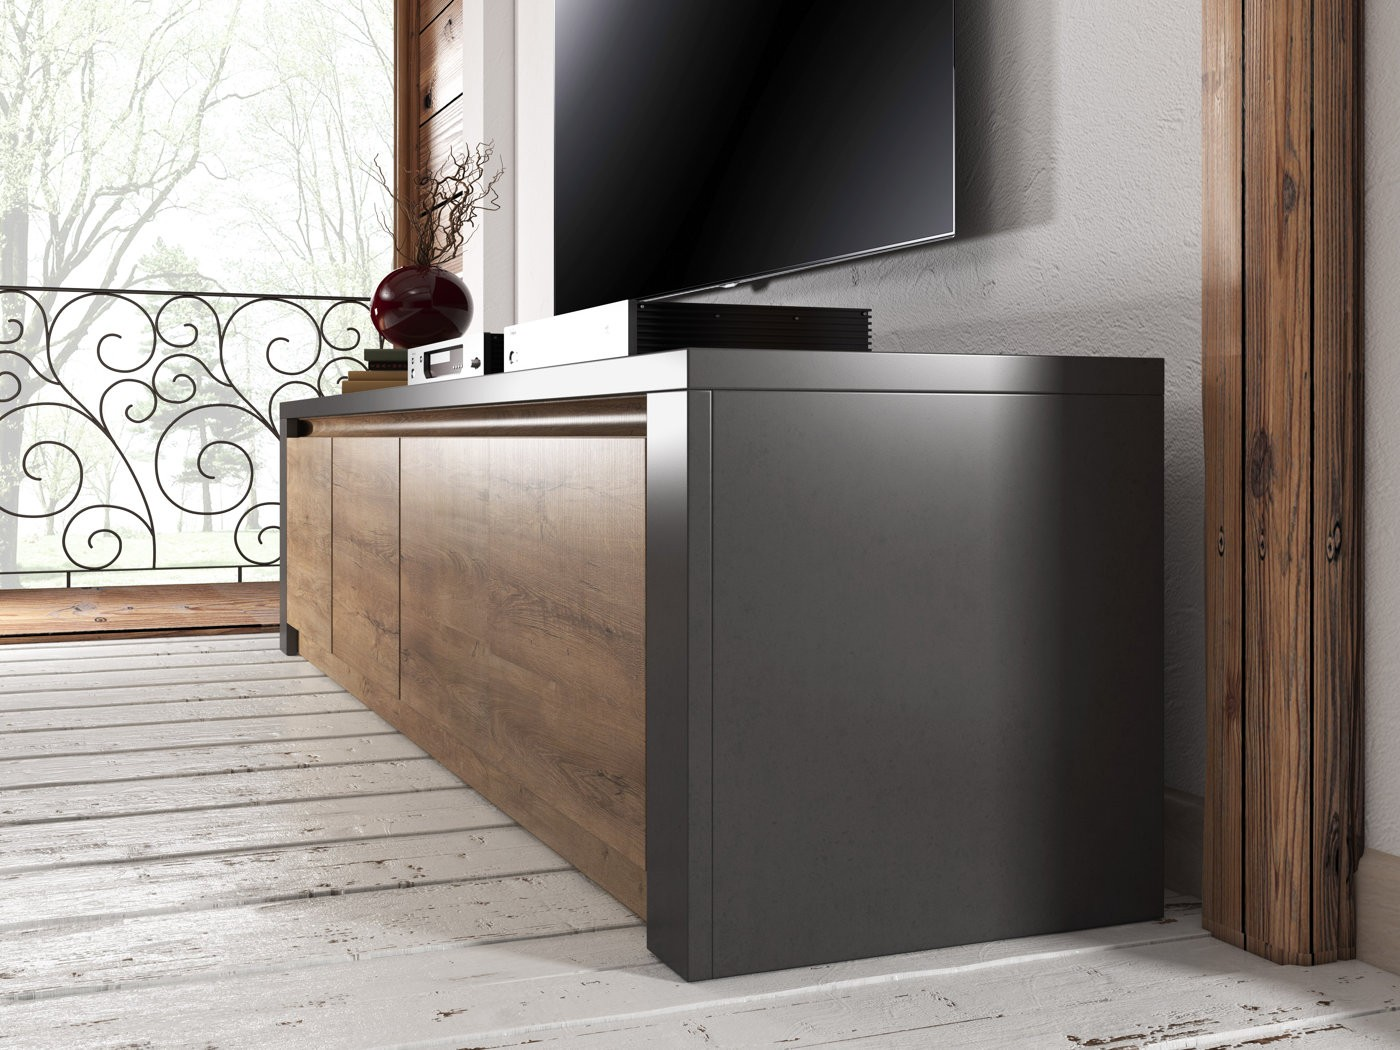 tv meubel monaco eiken grijs 4 vakken 170 cm tv. Black Bedroom Furniture Sets. Home Design Ideas